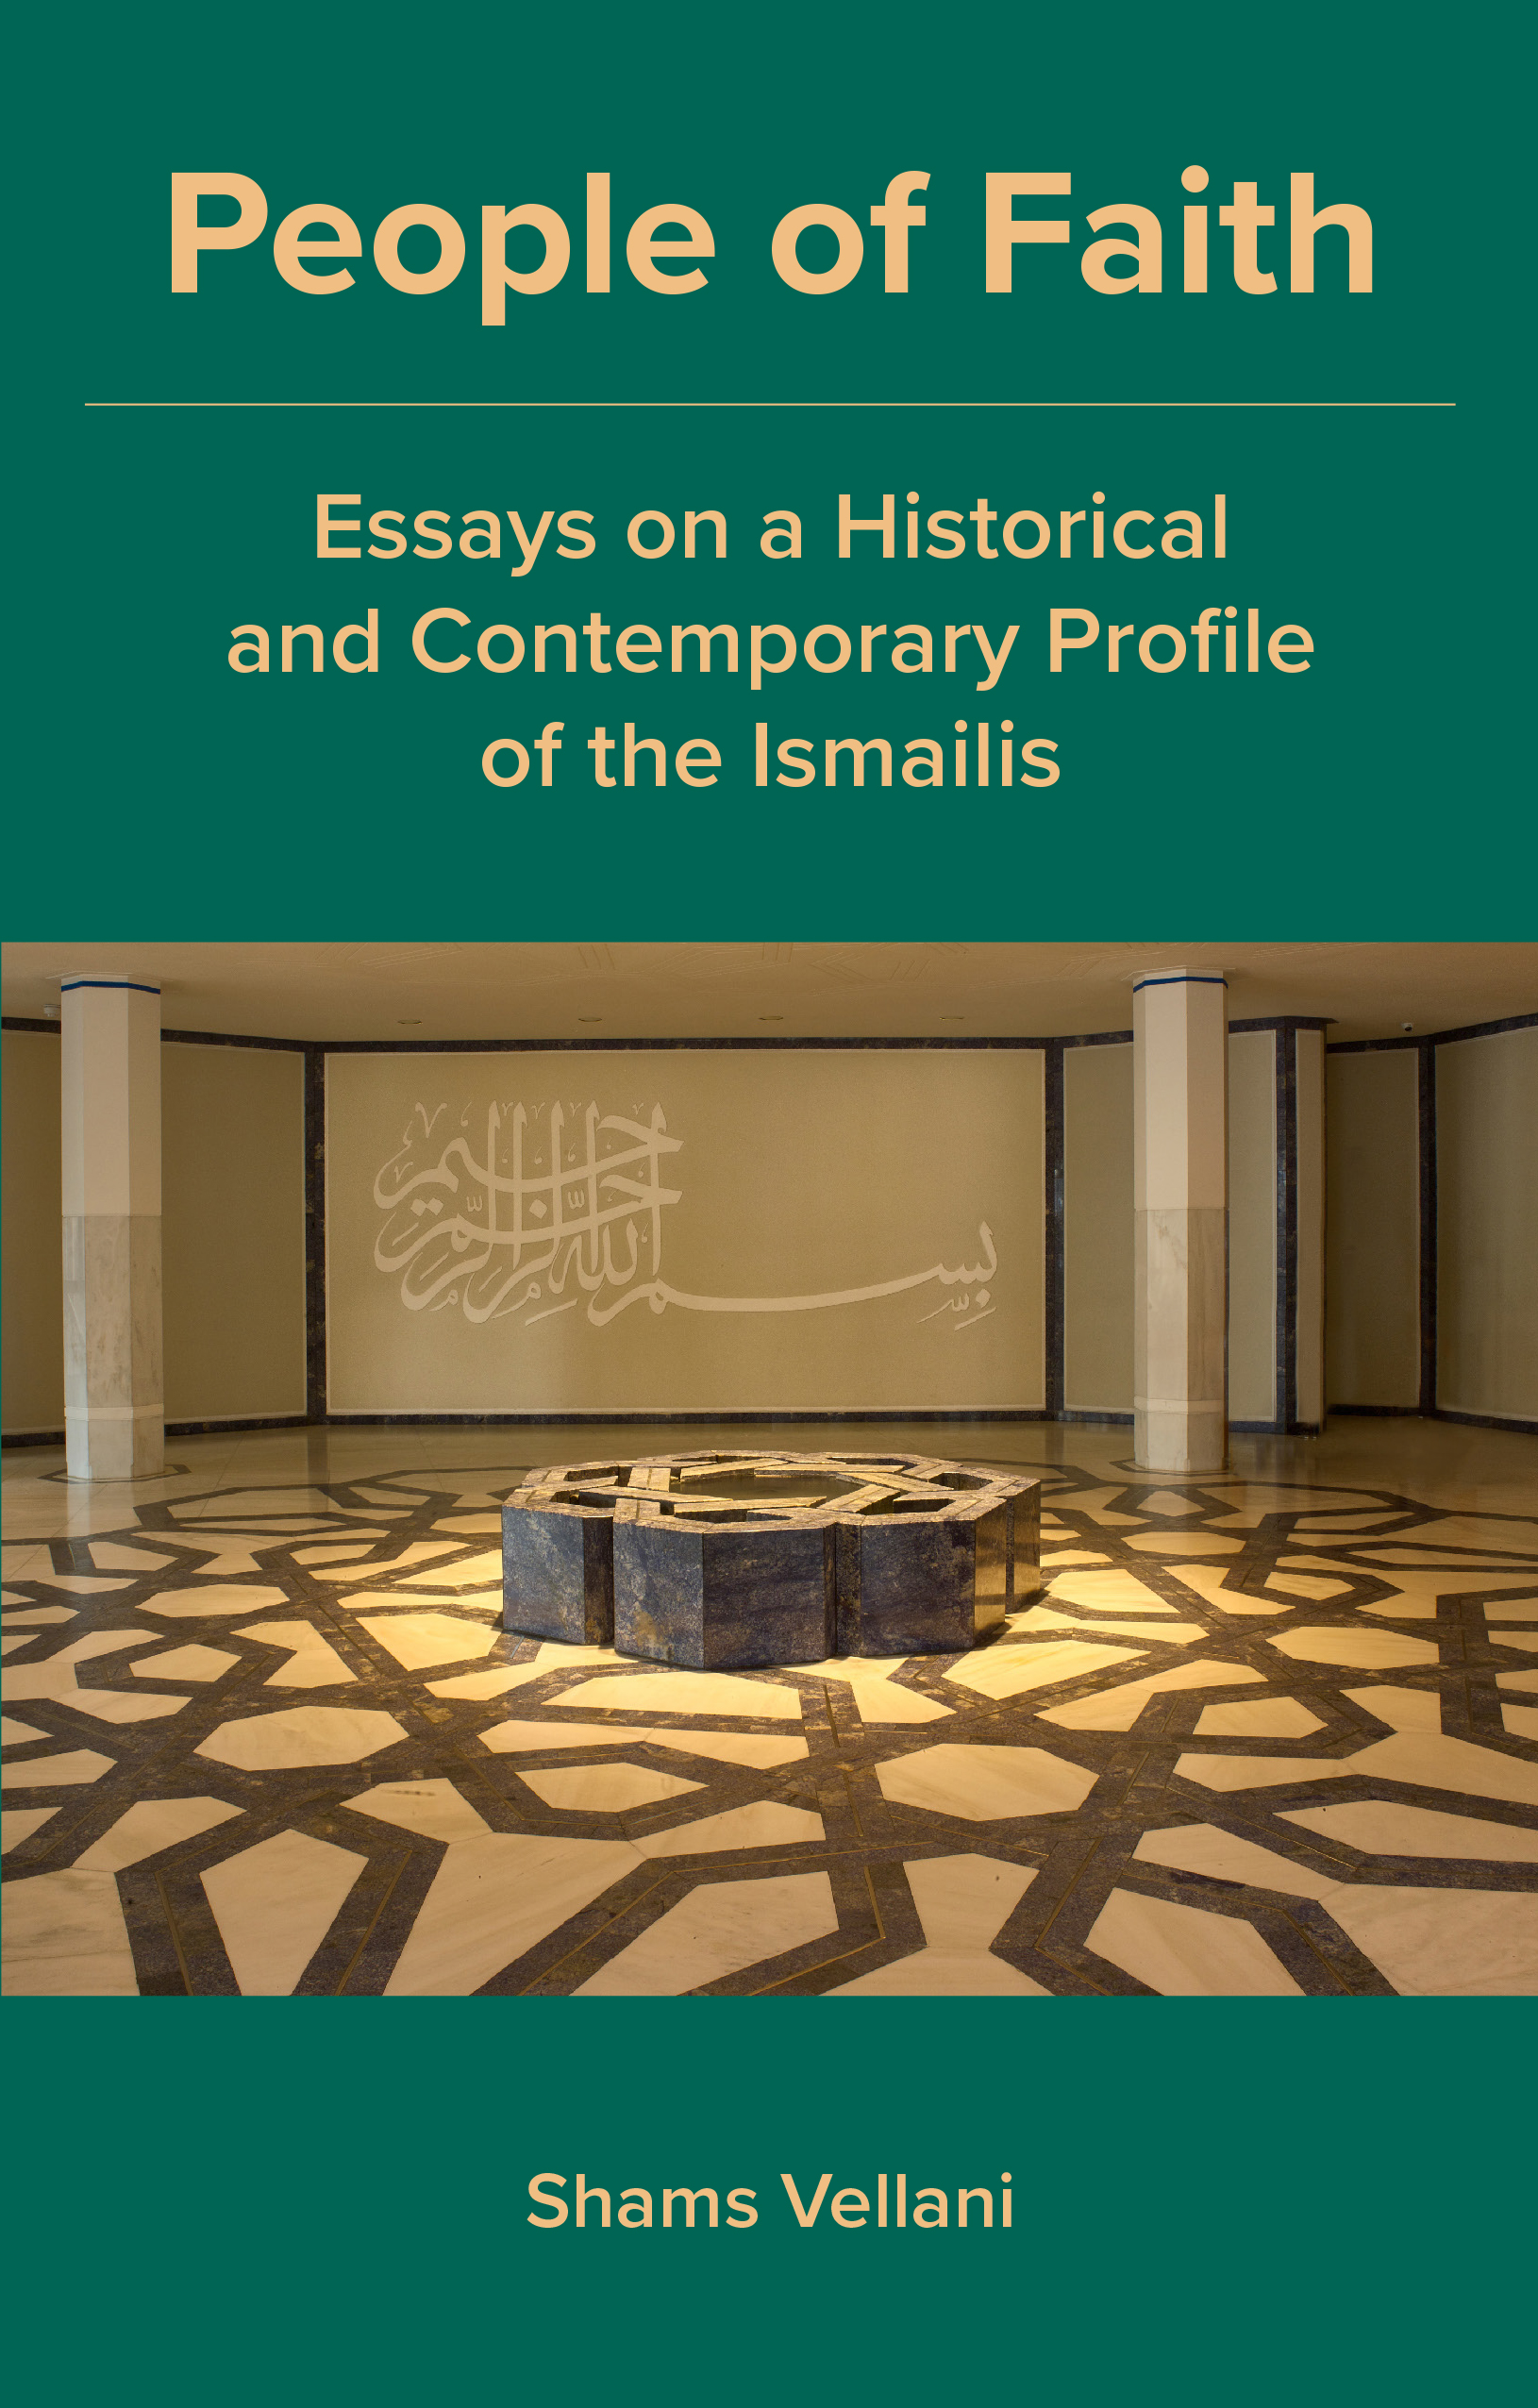 People of Faith: Essays on a Historical and Contemporary Profile of the Ismailis by Shams Vellani